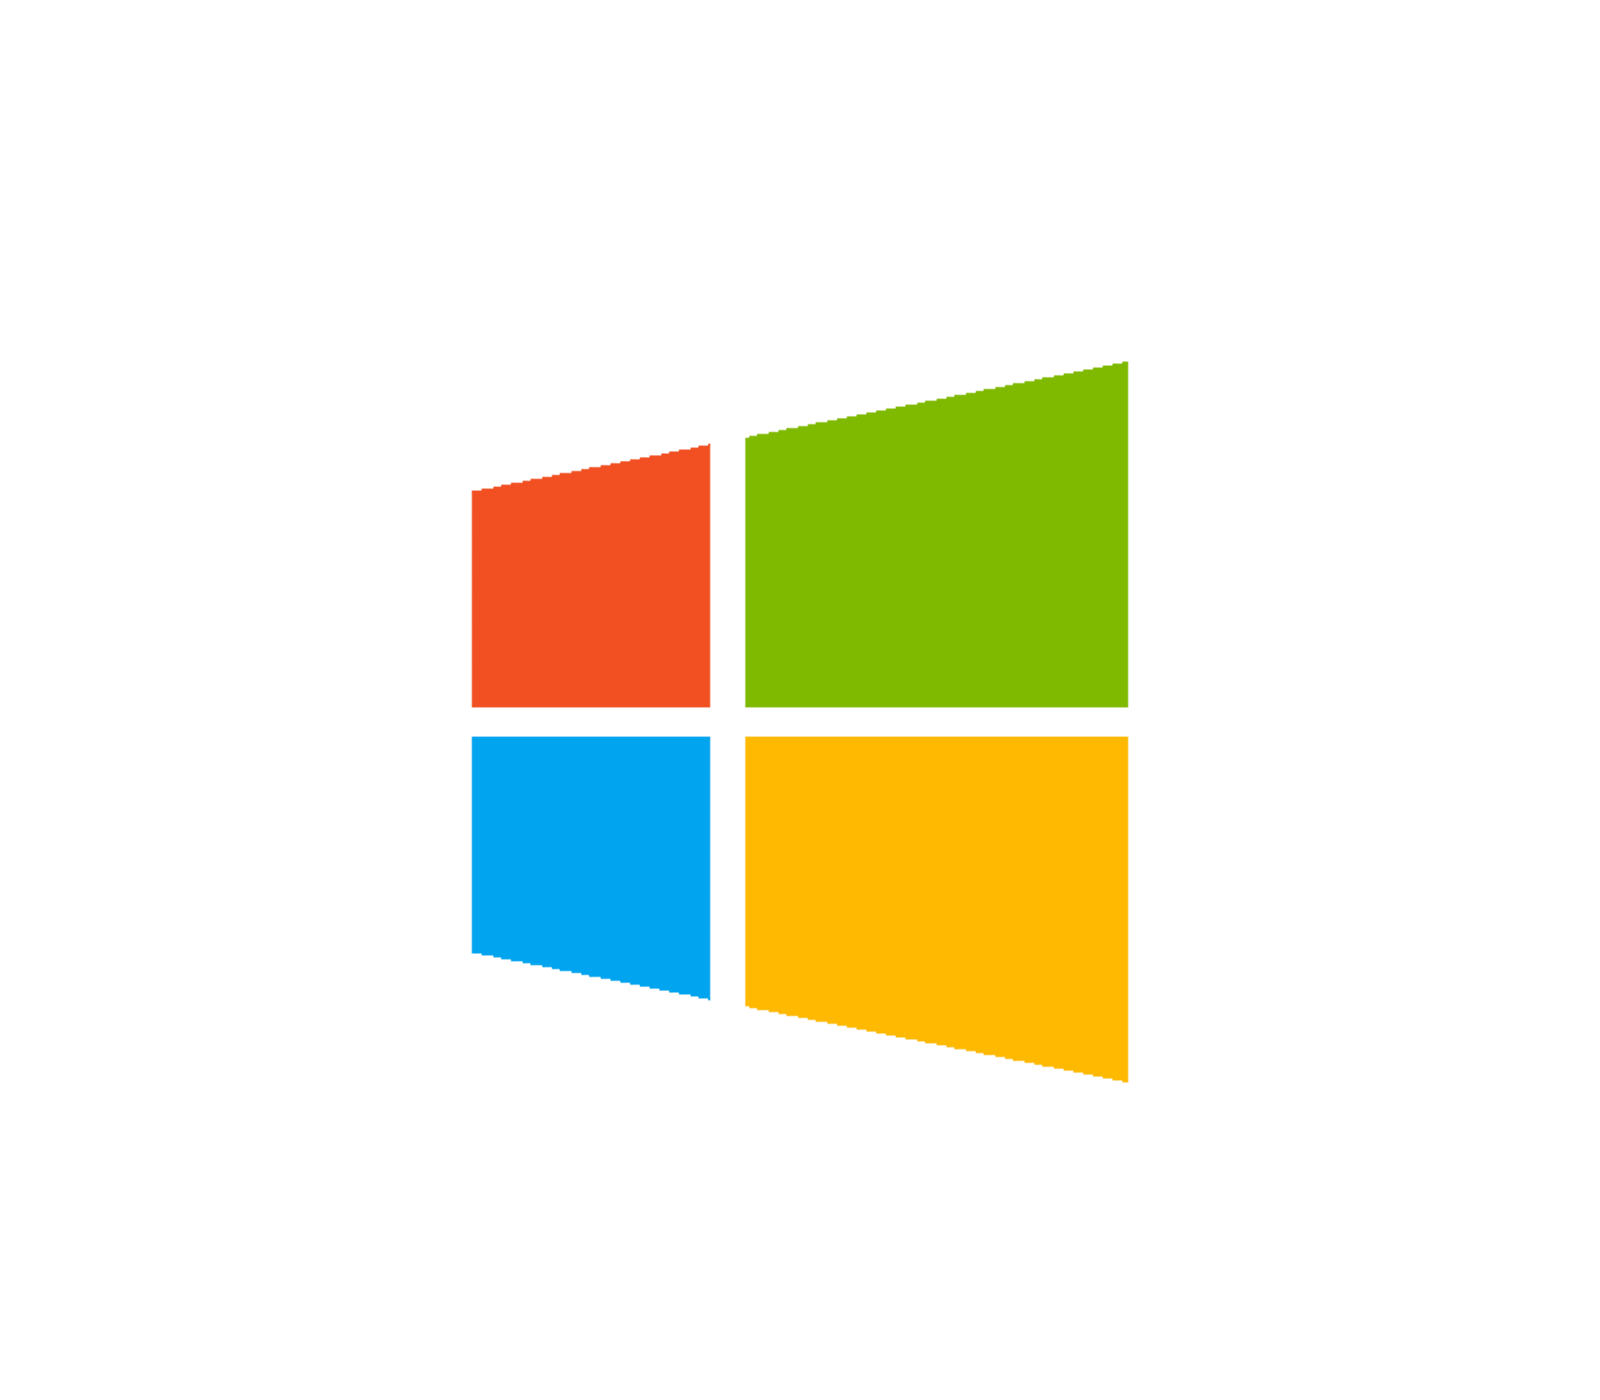 Windows Free Download File PNG Image